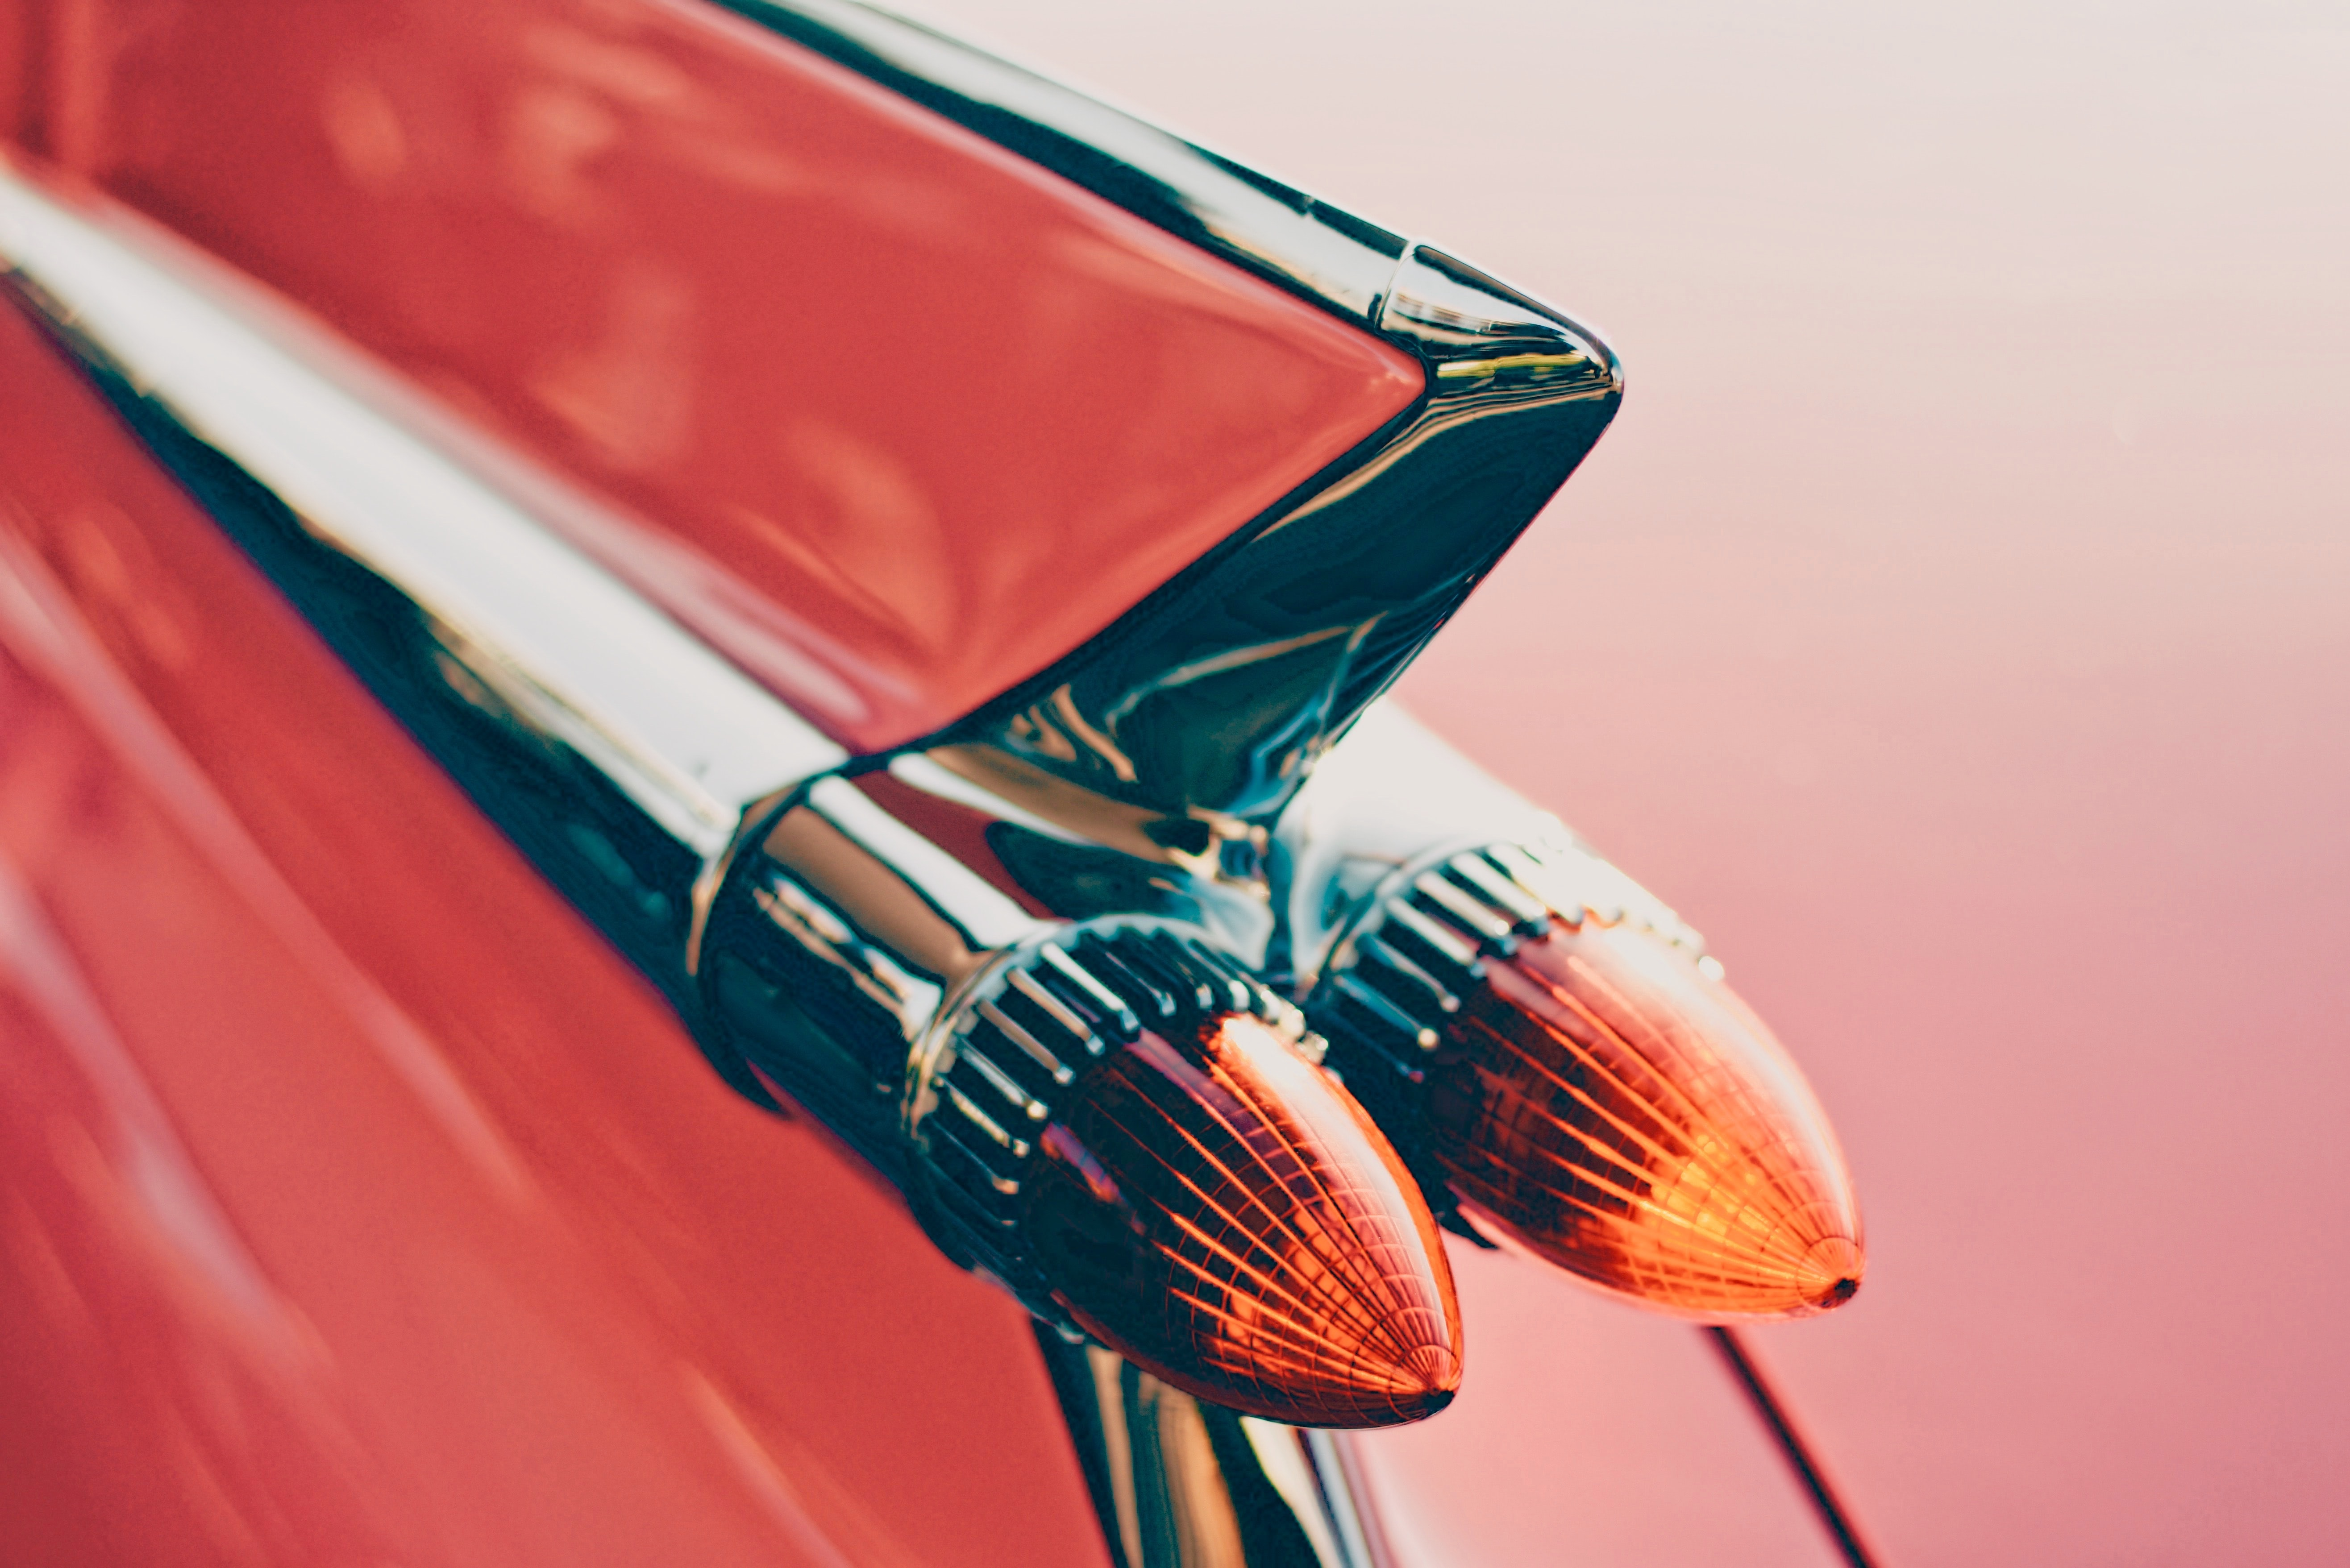 Close-up of a glossy part of a red car body